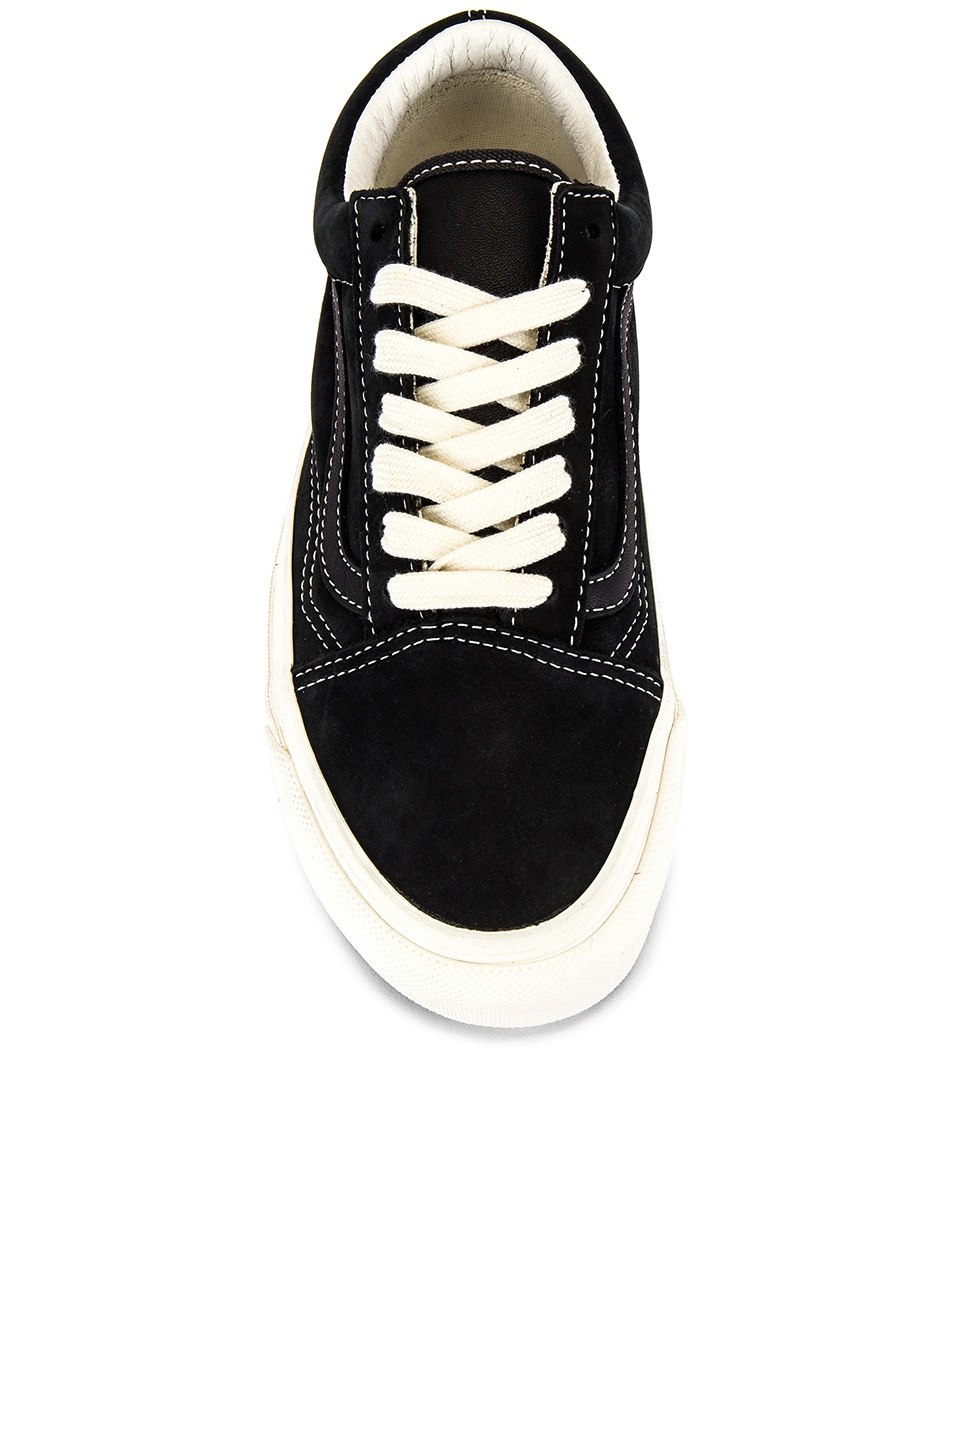 Image 4 of Vans Vault OG Old Skool LX in Raven & Black